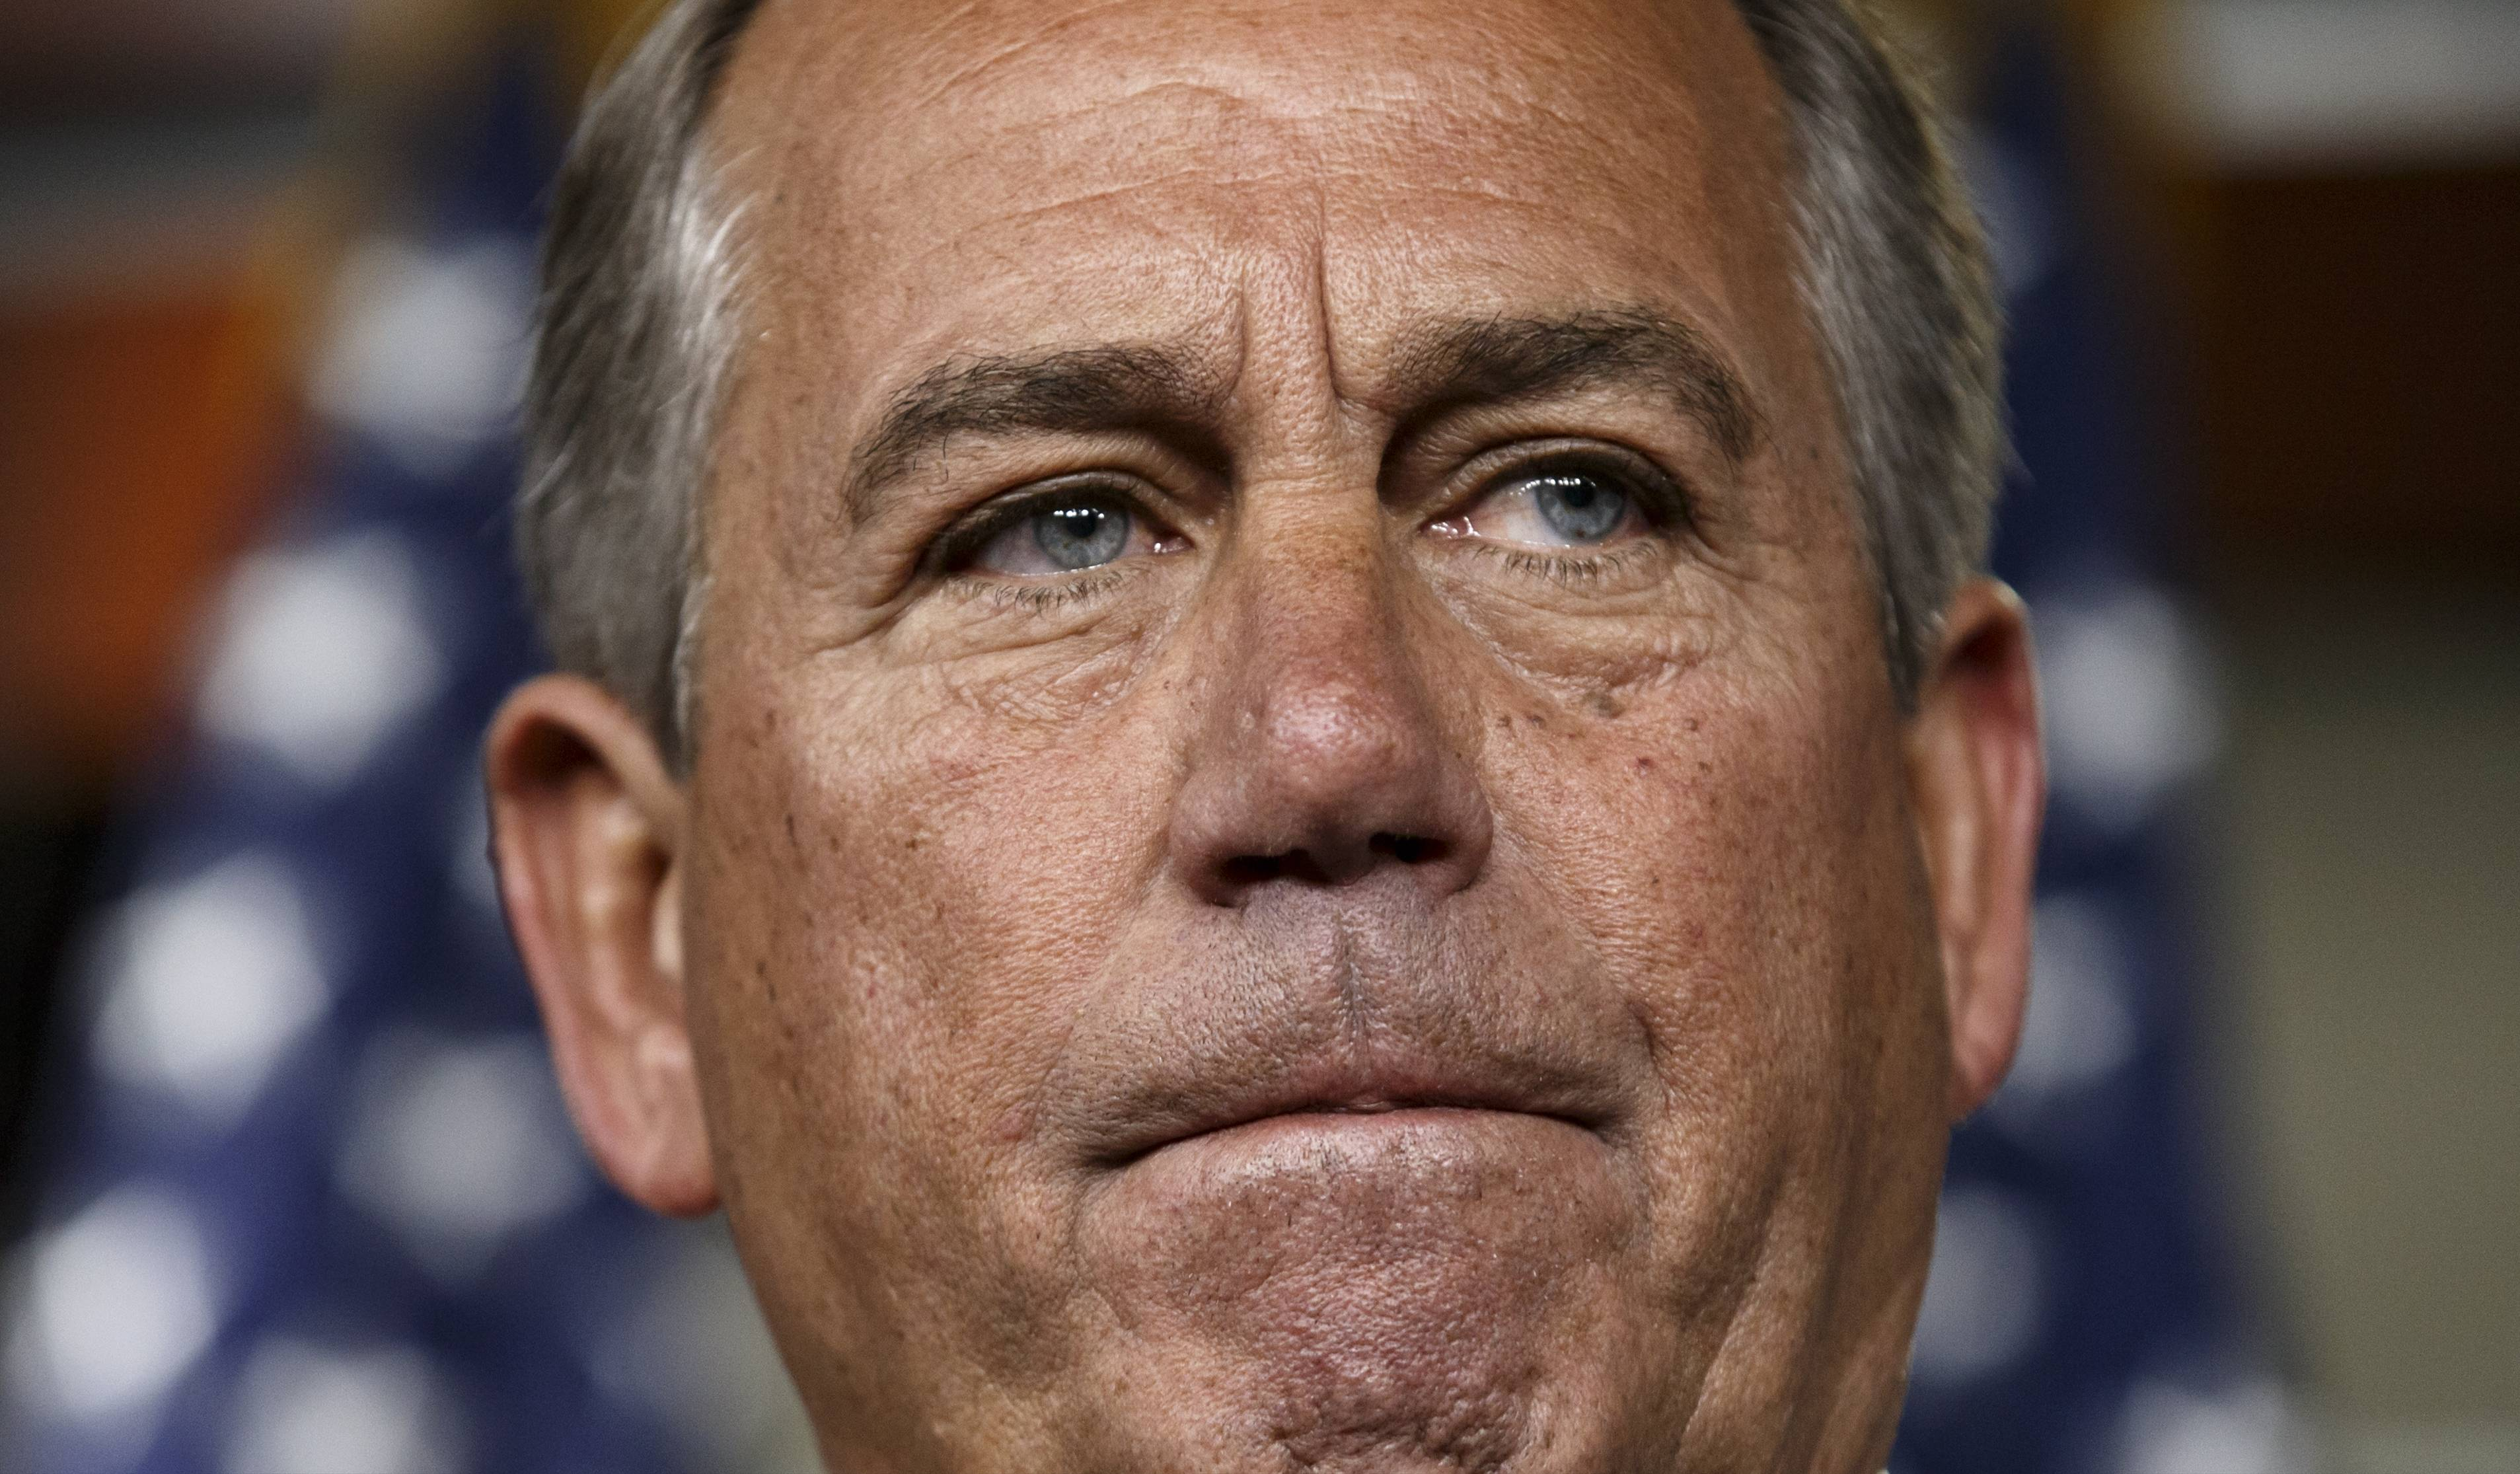 Party leaders, including House Speaker John Boehner, seen here, insist the GOP-controlled House is moving full speed ahead to approve a budget plan, but it has fallen behind schedule amid doubts there will be enough votes to pass it.